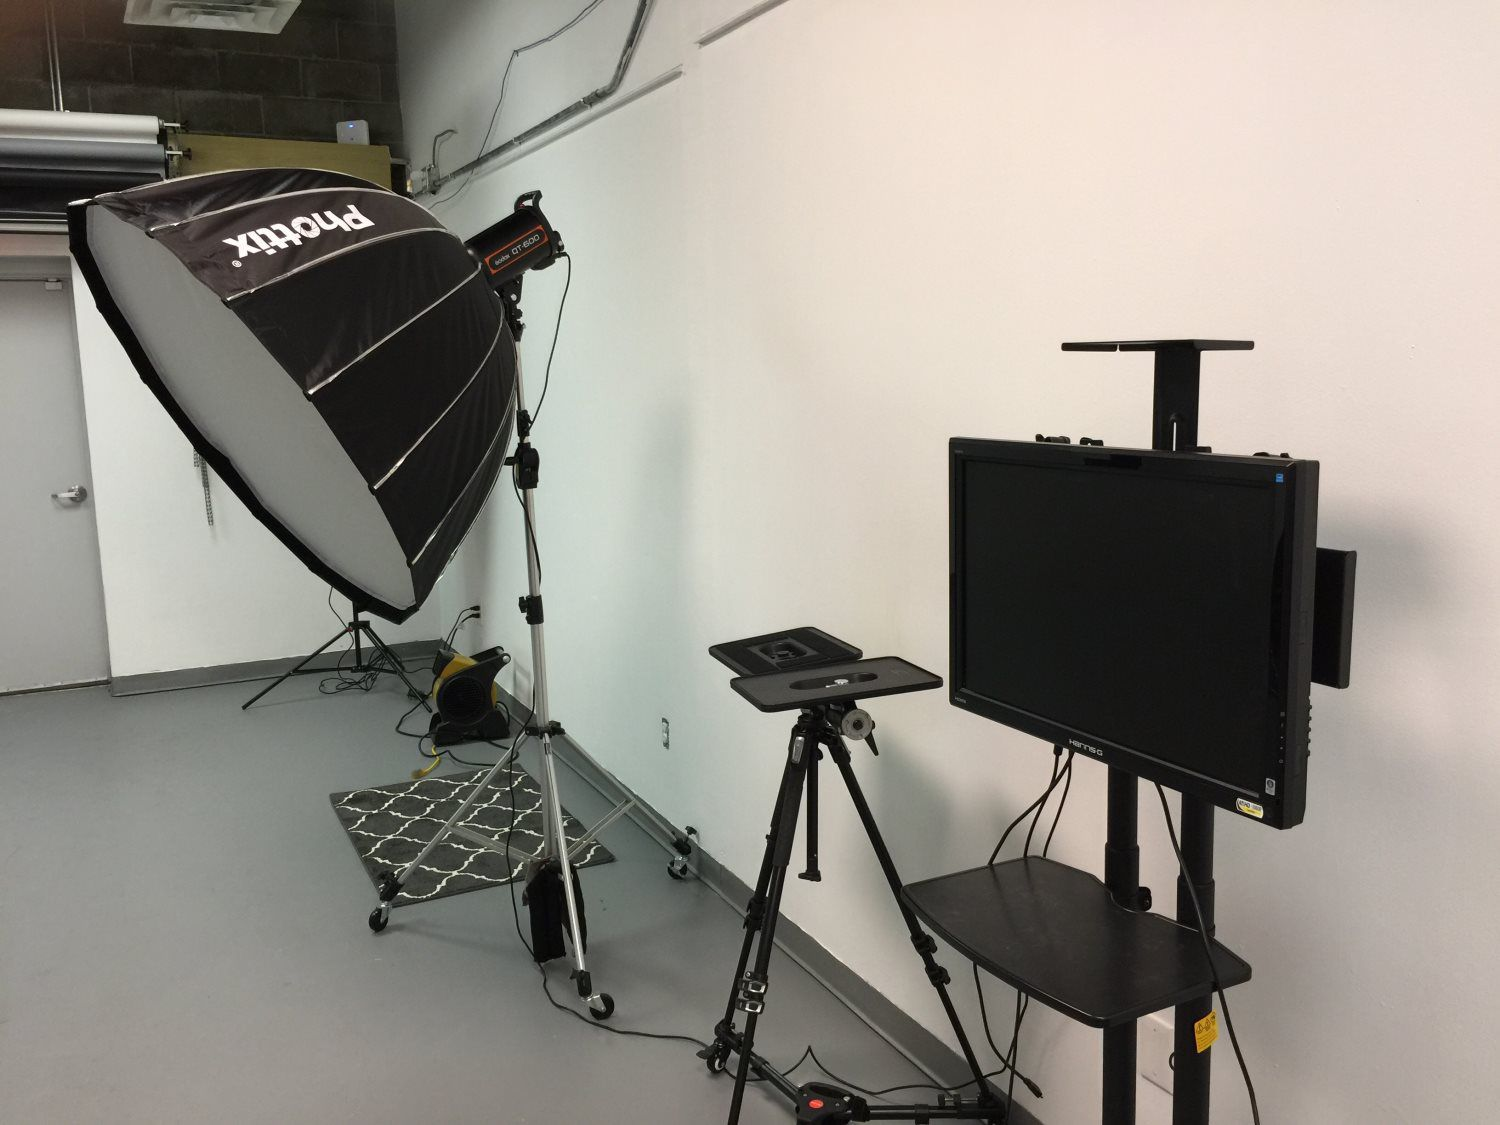 Lighting, television monitor and other studio equipment